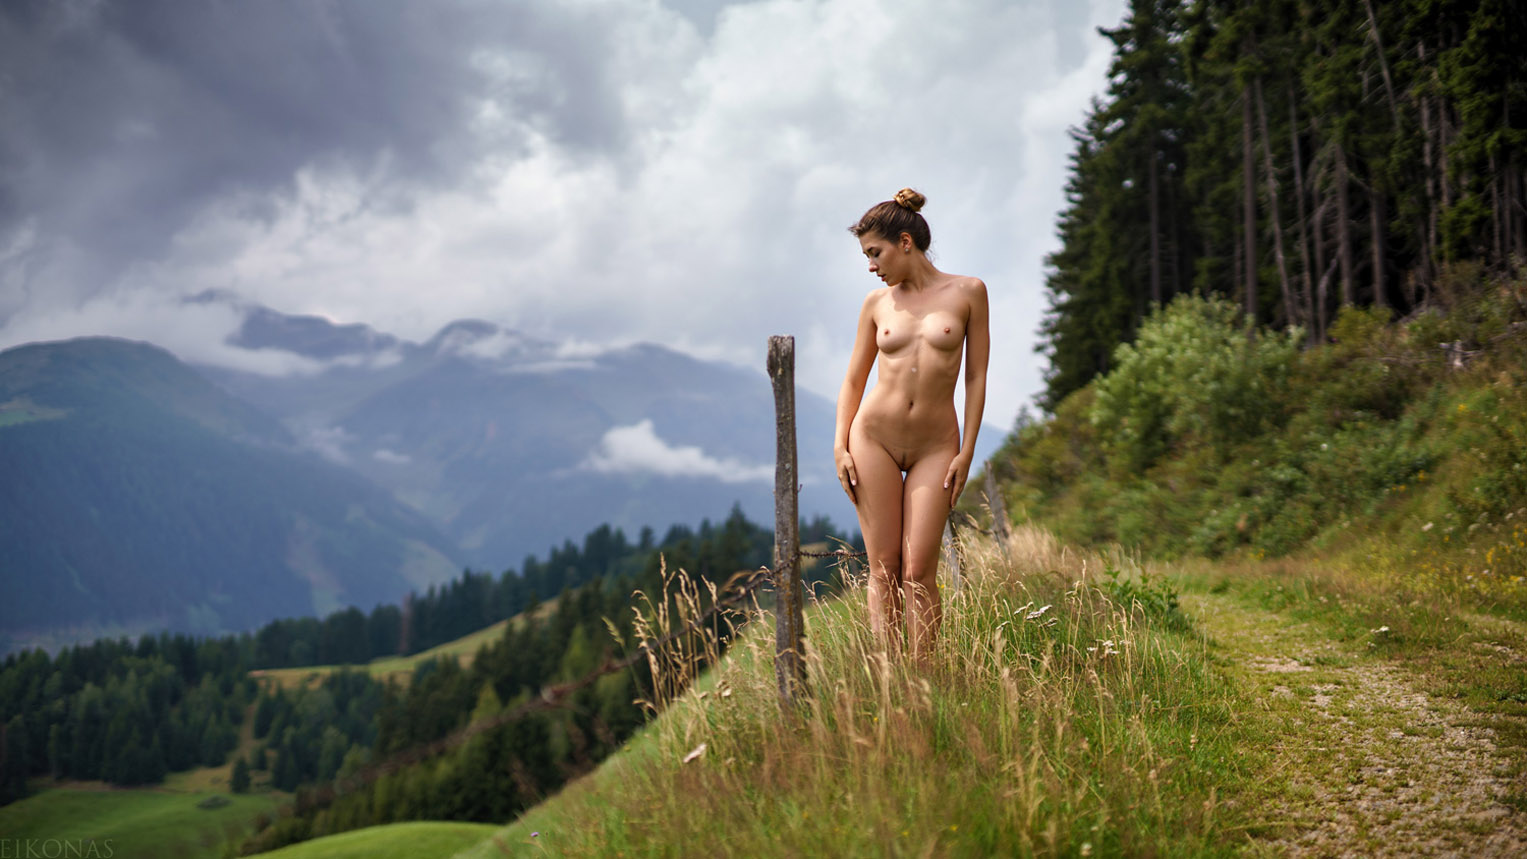 Naked nature photo shoot